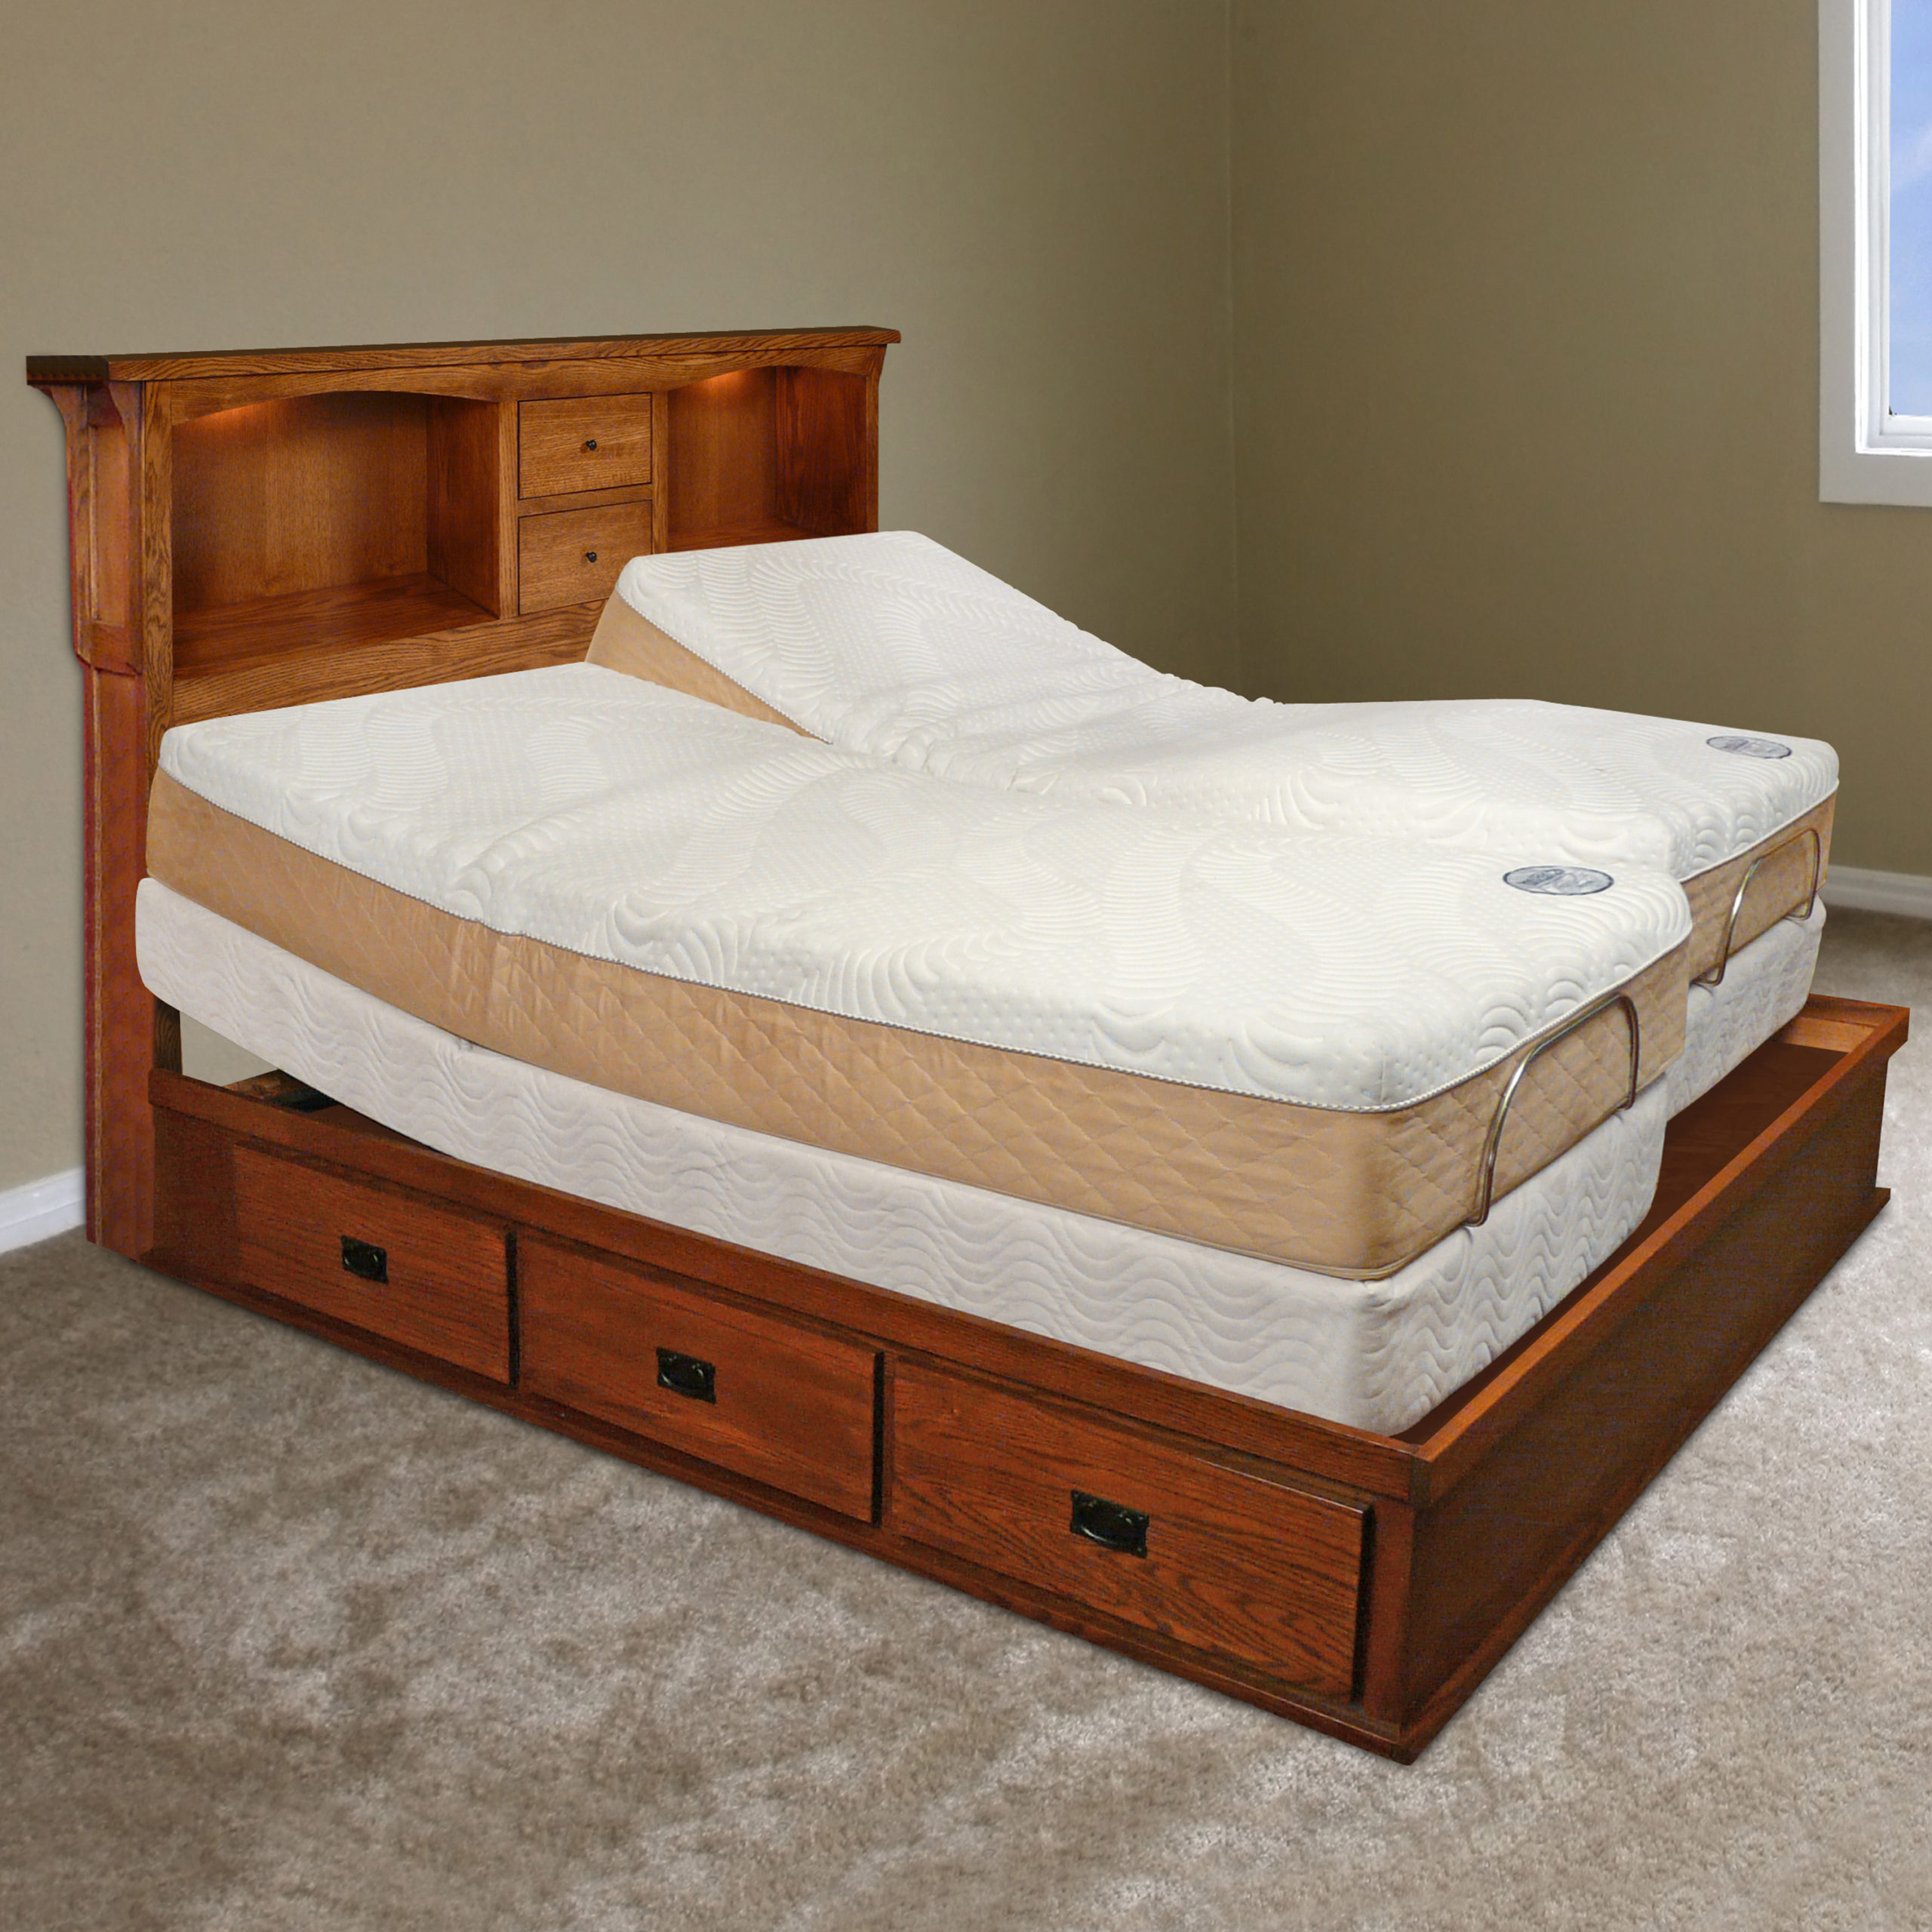 Image of: Mission Creek Power Base Dresser For Use With The Oak Land Mission Creek Collection Casepieces Innomax